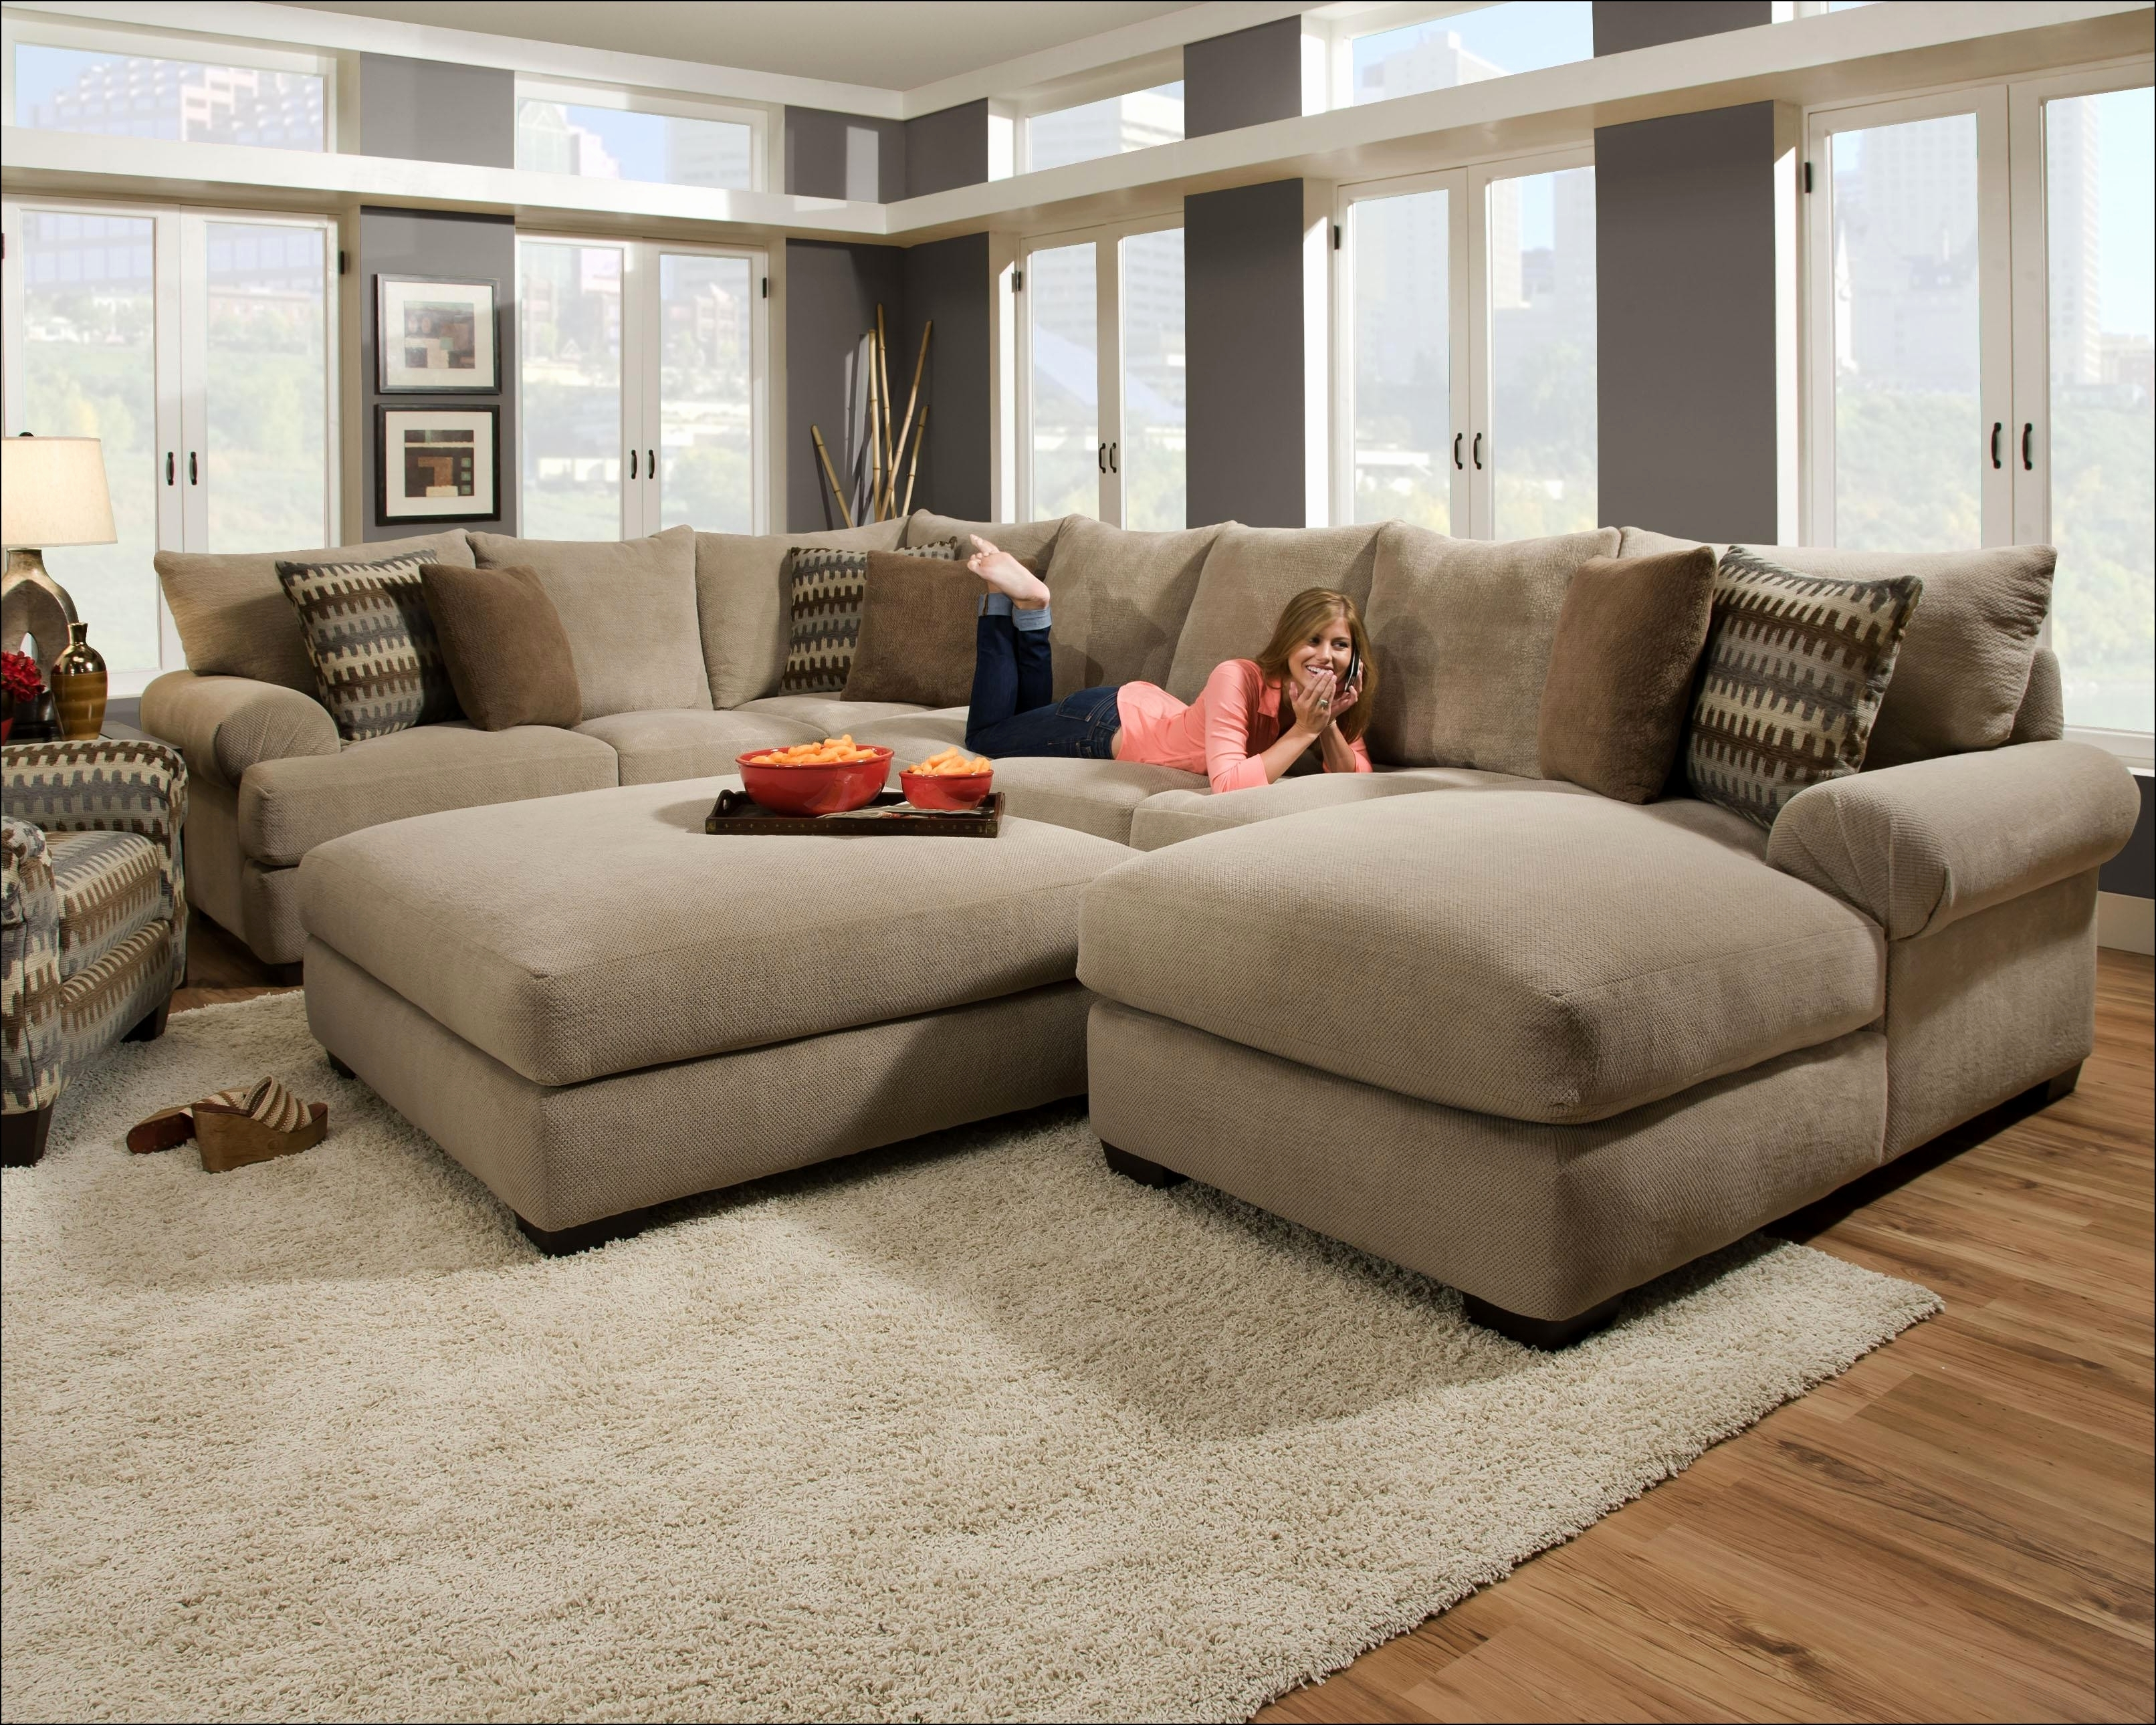 Huge Sofas Intended For Current Delightful Long Sofas Couches Snapshots – Seatersofa (View 8 of 15)